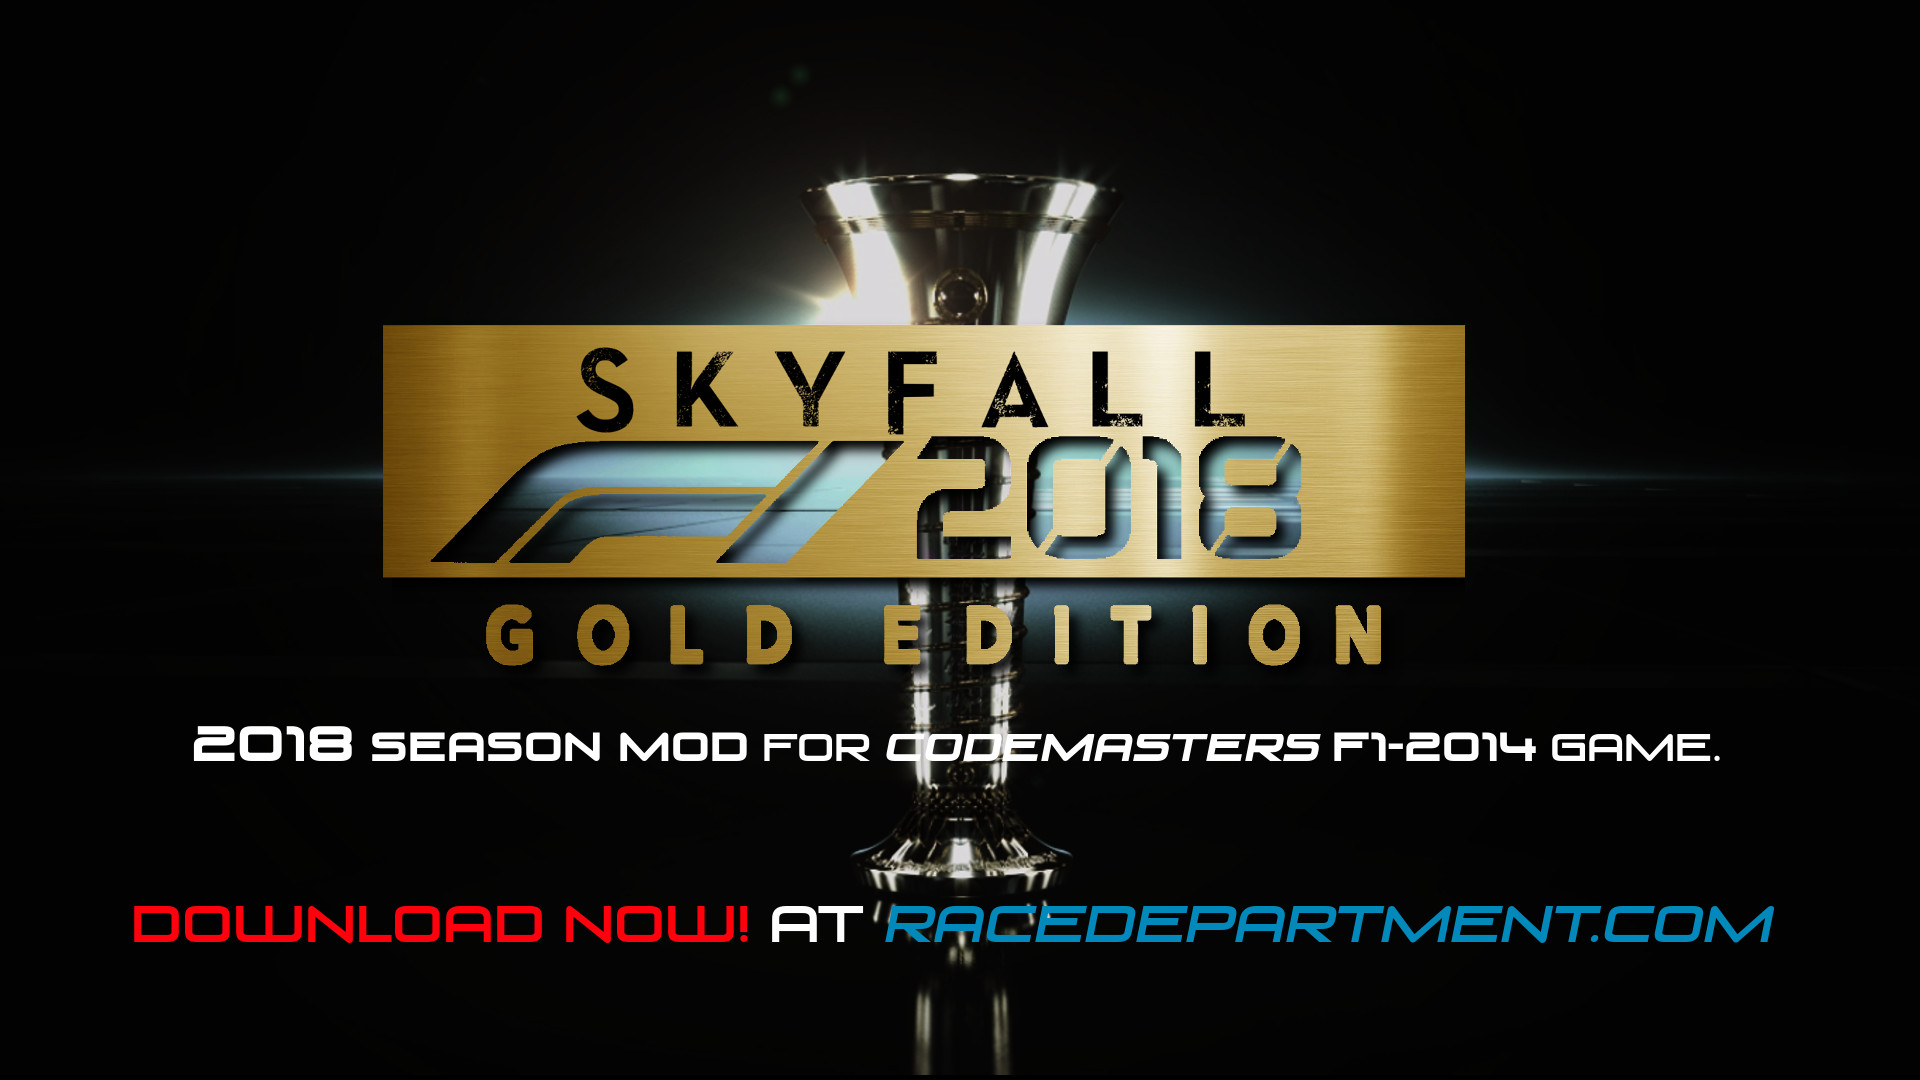 SKYFALL F1 2018 Season MOD [BETA] | RaceDepartment - Latest